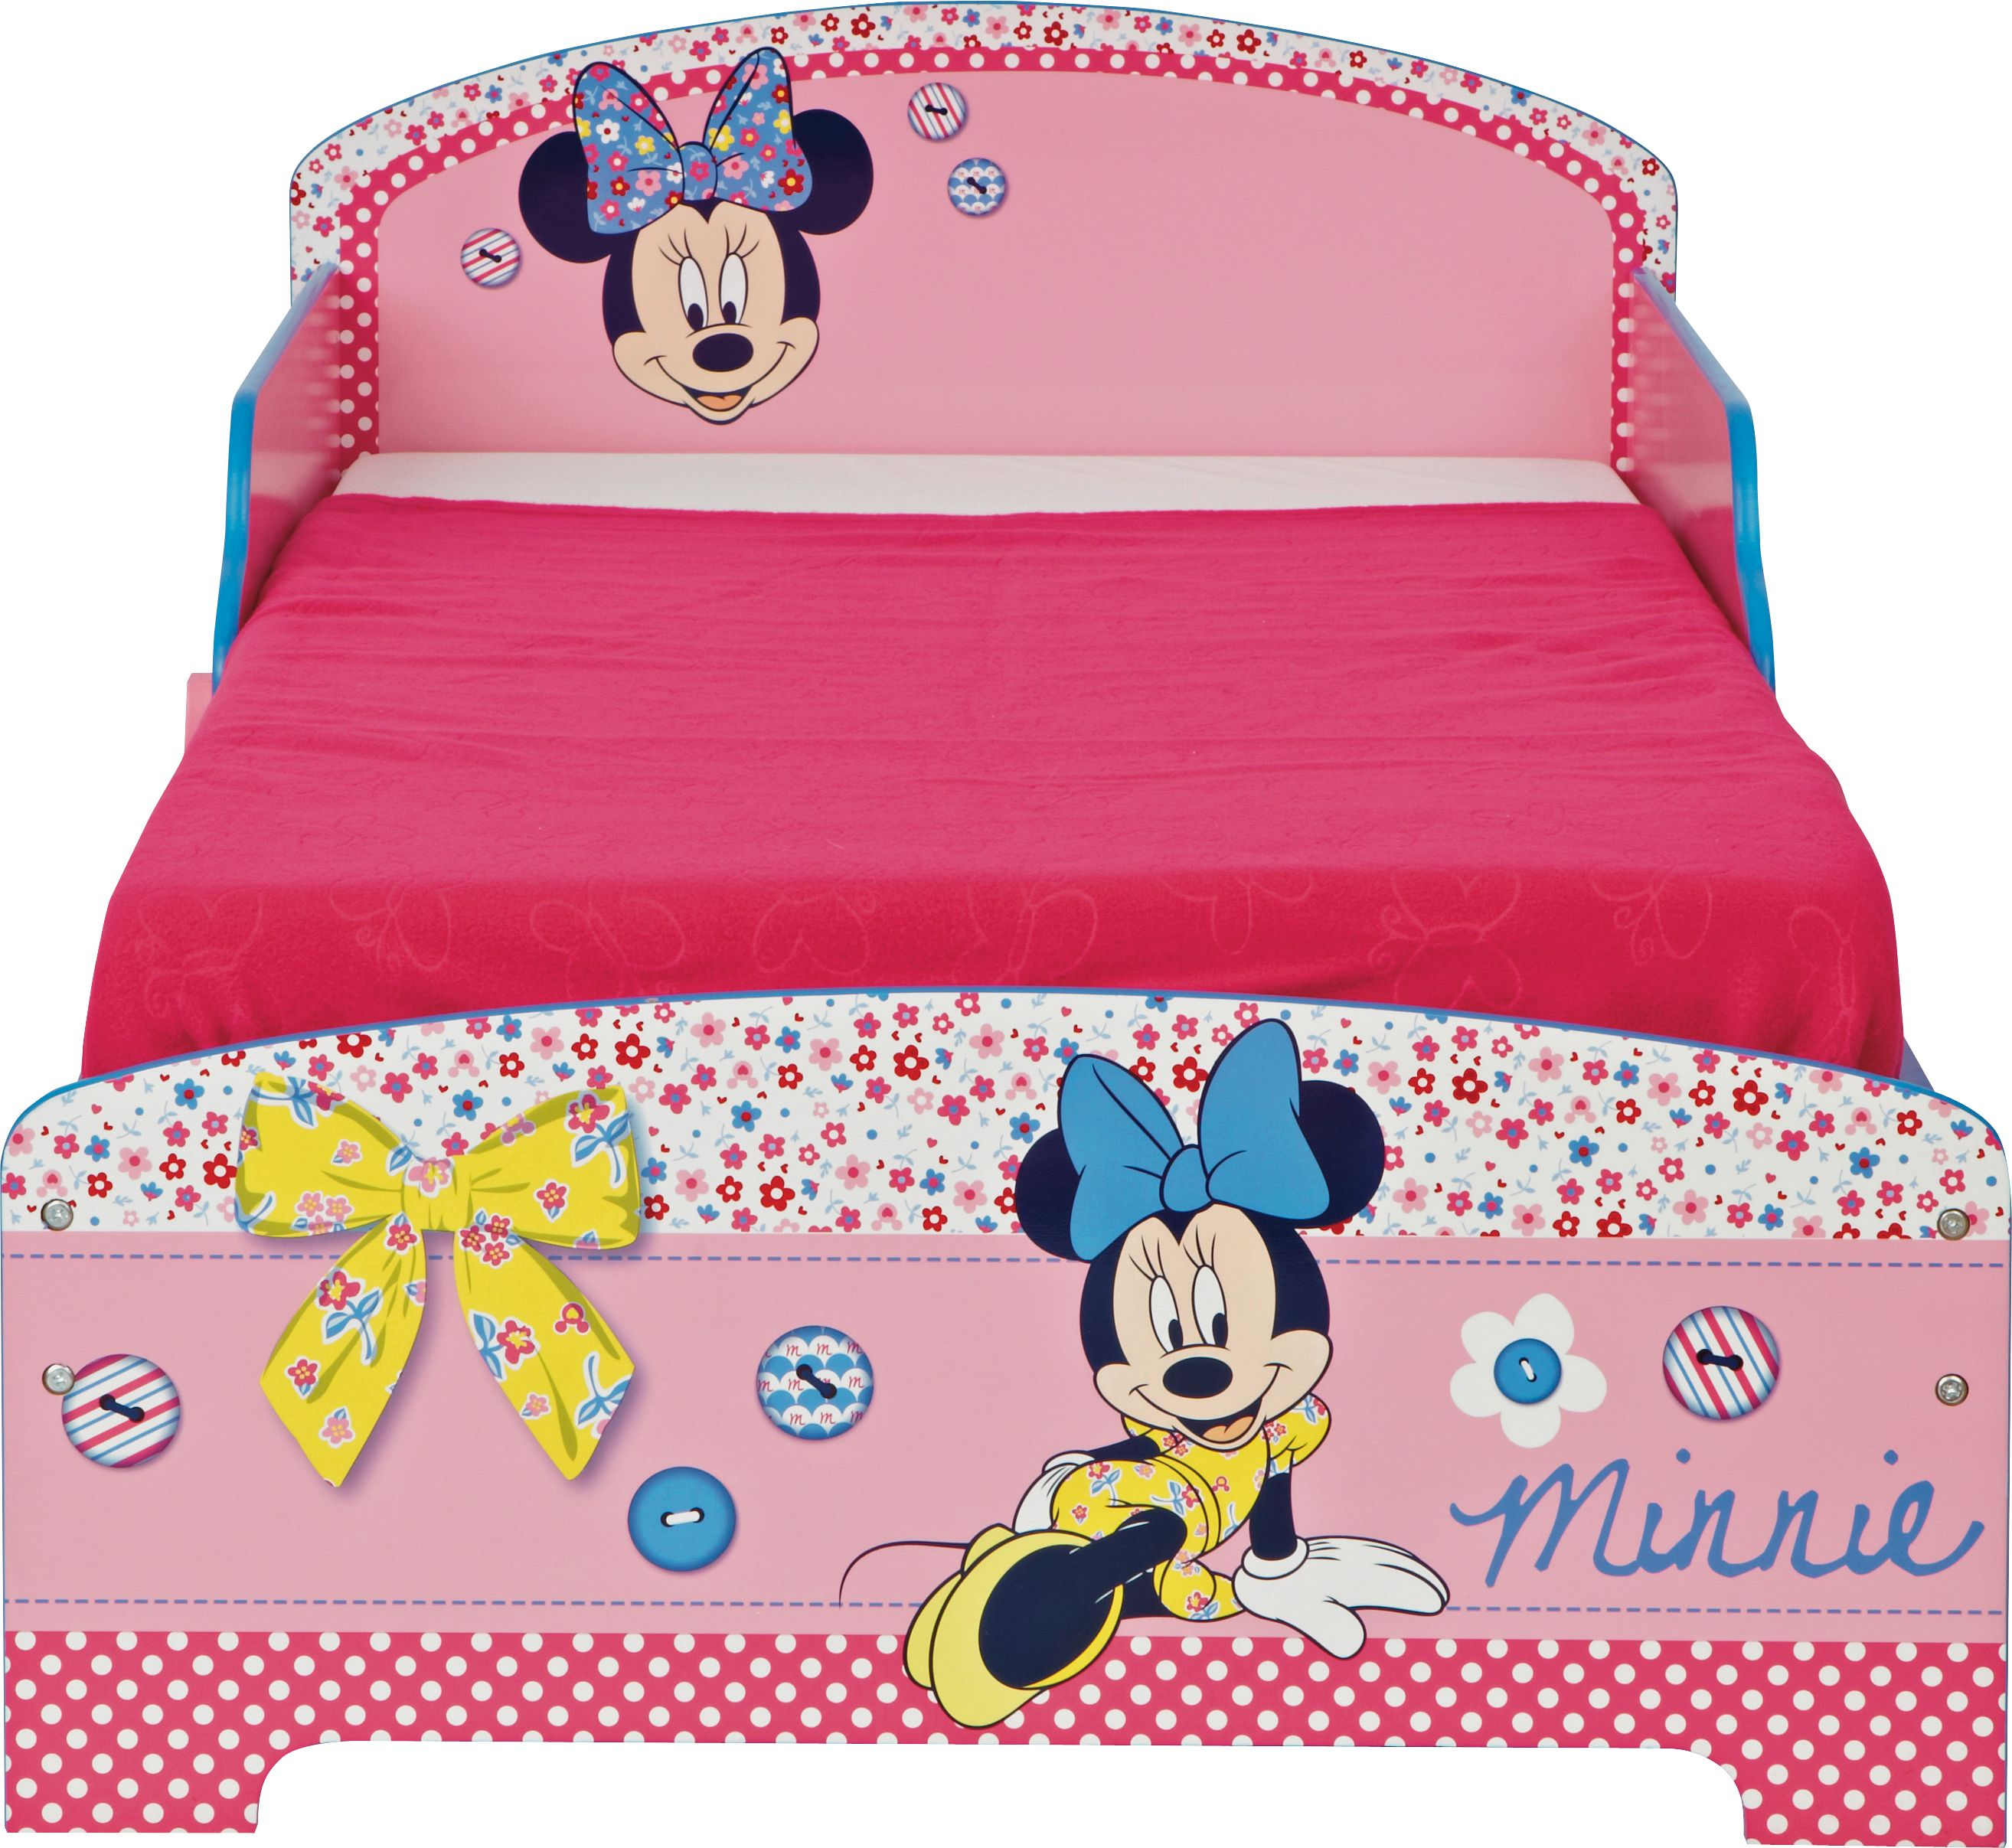 bedtime will be more appealing with this wood effect minnie mouse bed frame from argos